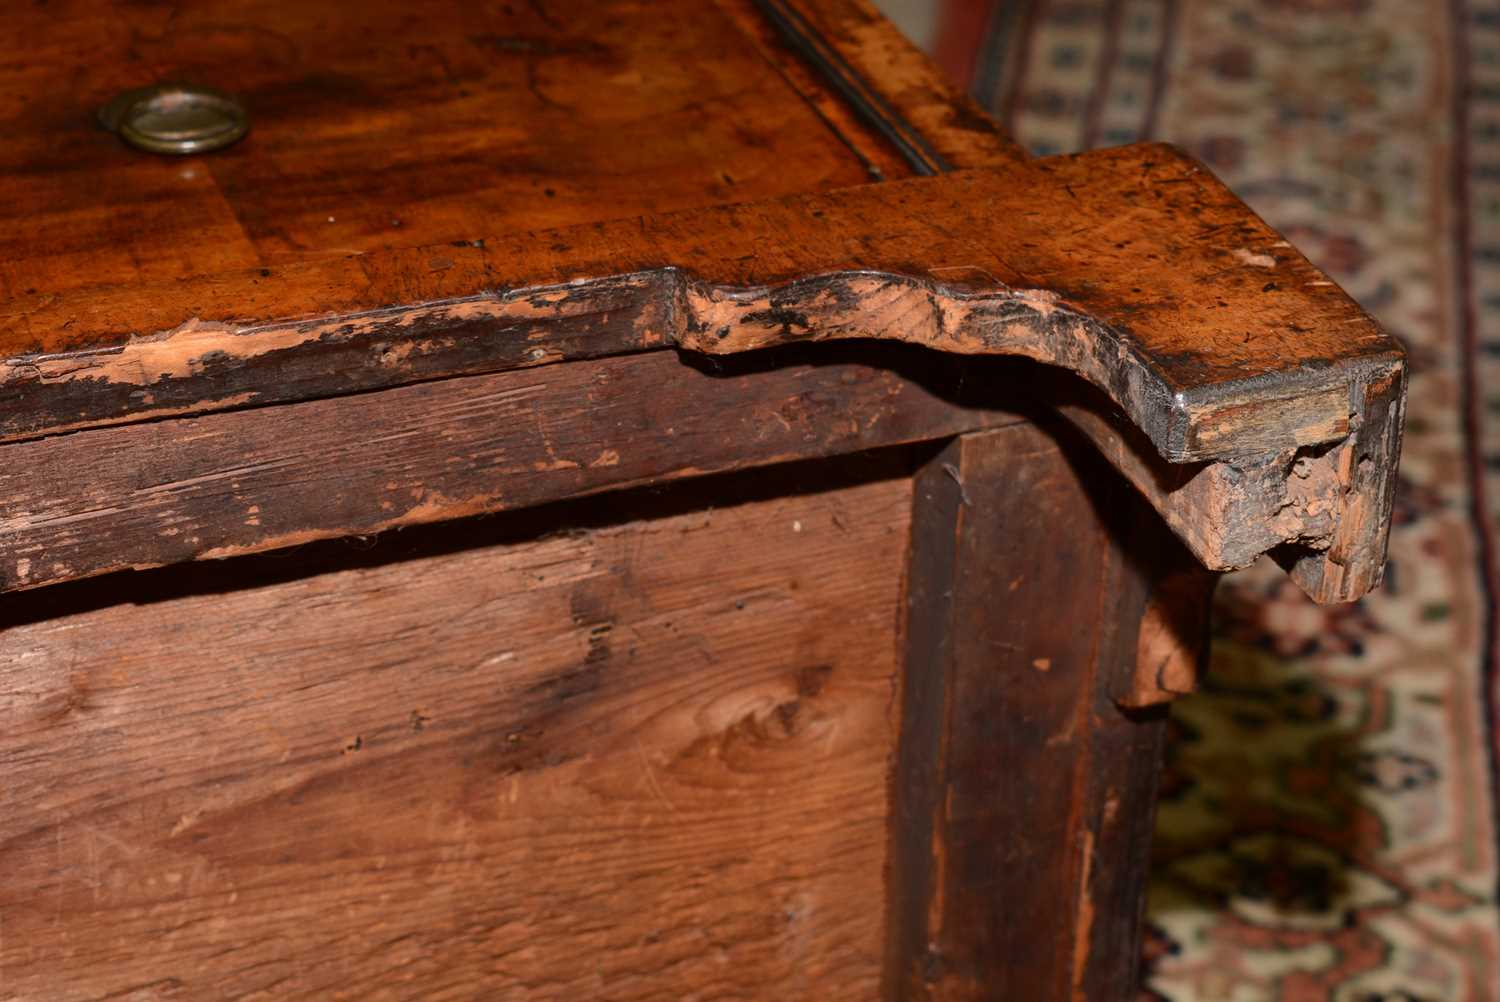 Early 18th Century walnut bachelors chest - Image 24 of 39